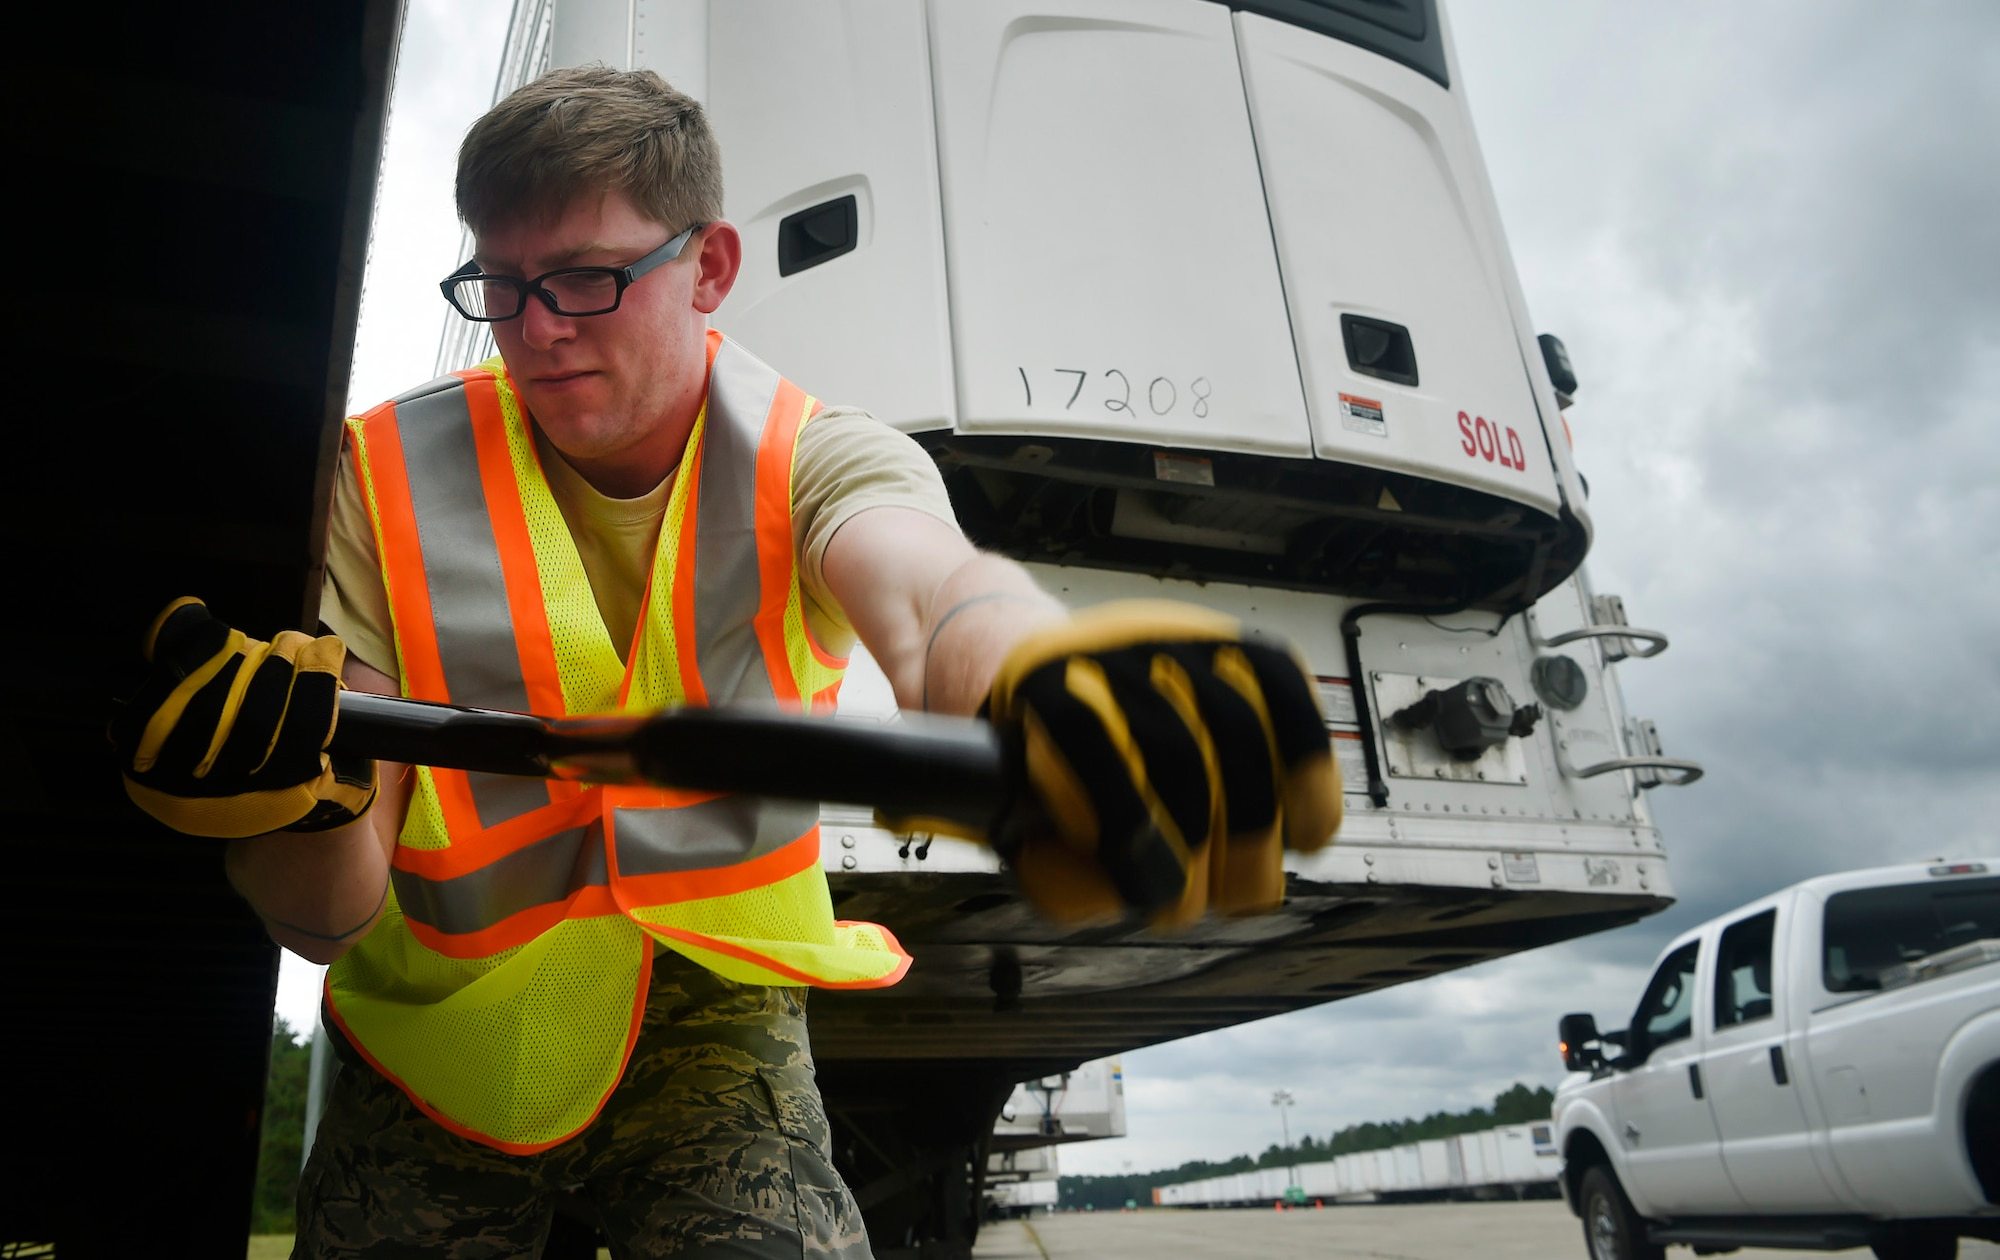 Staff Sgt. Donny Johnson, 43rd Air Mobility Squadron, Pope Air Force Base, N.C., helps disconnect a trailer from a truck transporting goods and commodities in support of Hurricane Irma relief efforts at Joint Base Charleston's North Auxiliary Airfield, S.C., Sept. 13, 2017. The airfield acts as a receiving and distribution staging area for goods and commodities being transported to hurricane victims here and areas to the southeast over the next few weeks. Airmen of the 43rd Air Mobility Operations Group and the U.S. Department of Homeland Security - Federal Emergency Management Agency (FEMA) are working side-by-side executing relief efforts. (U.S. Air Force photo by Staff Sgt. Christopher Hubenthal)